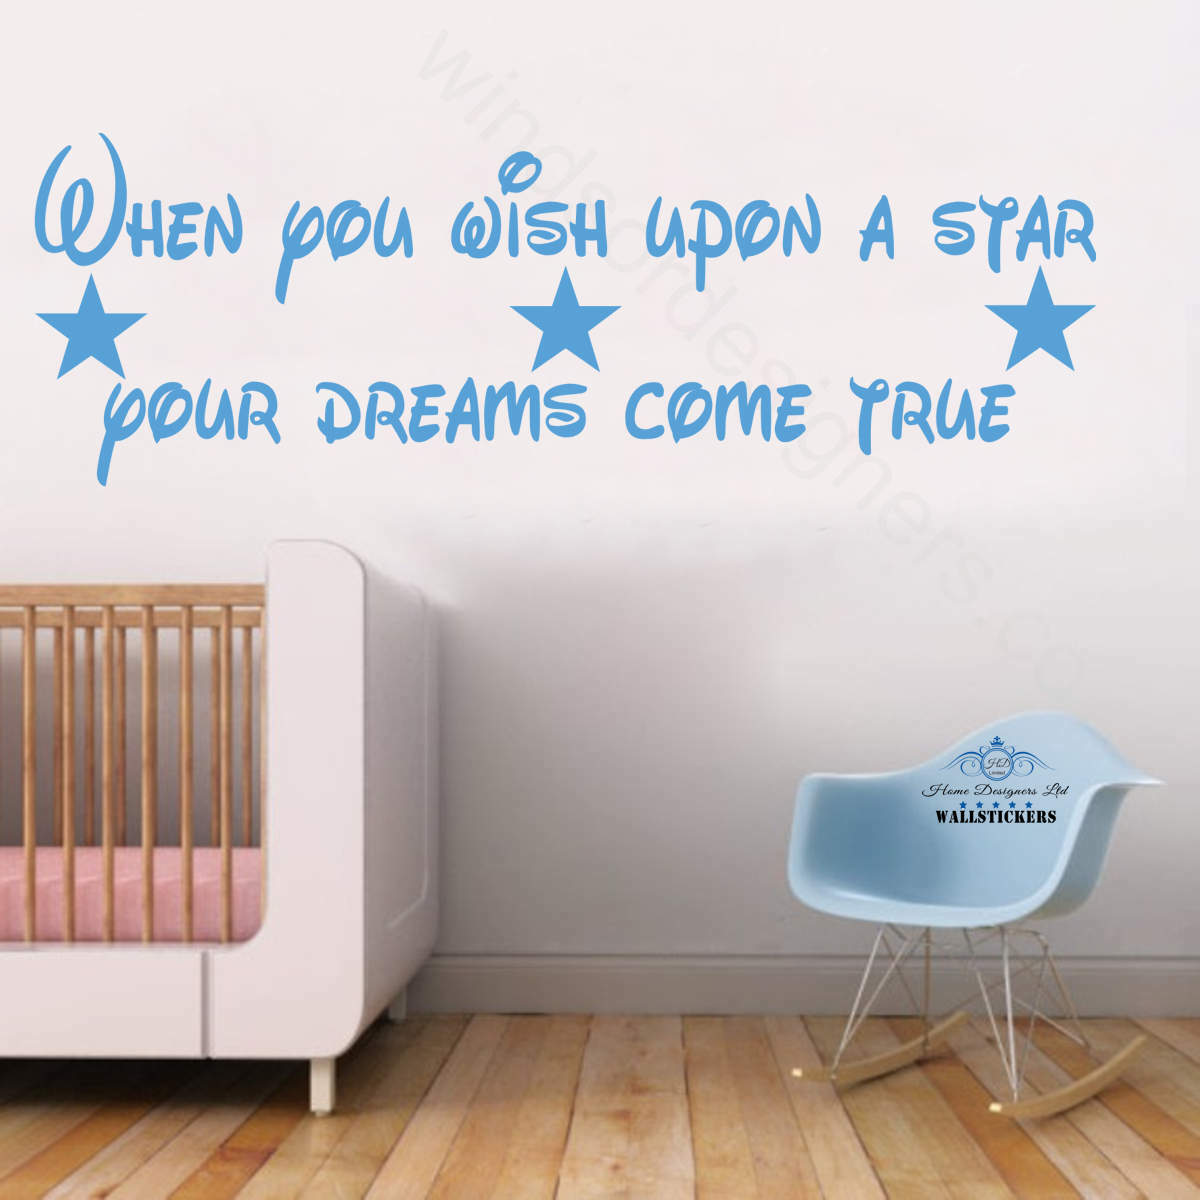 when you wish upon a star dream wall sticker design when you wish upon a star dream wall sticker design